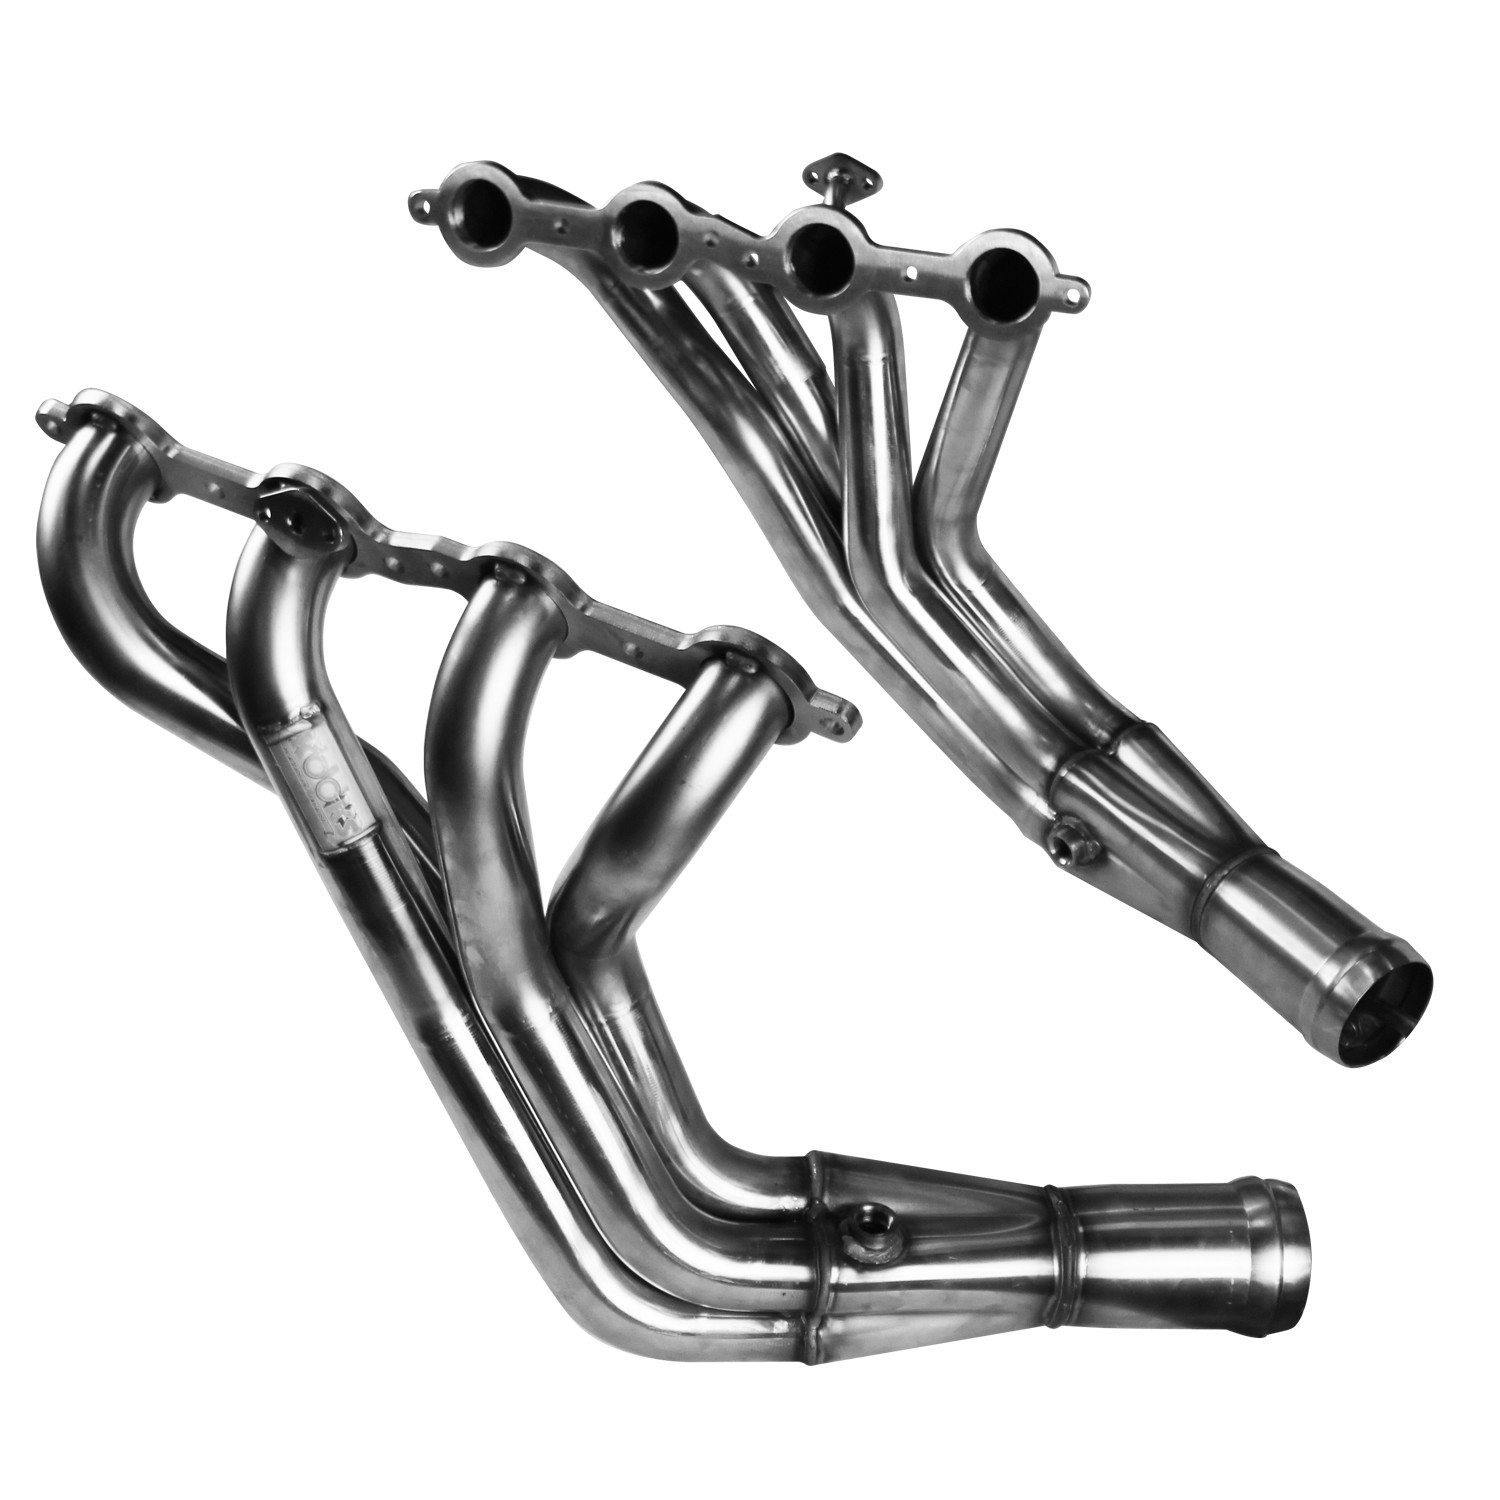 Ls1 Procharger Dyno: Kooks Headers 1997-2000 C5 Corvette